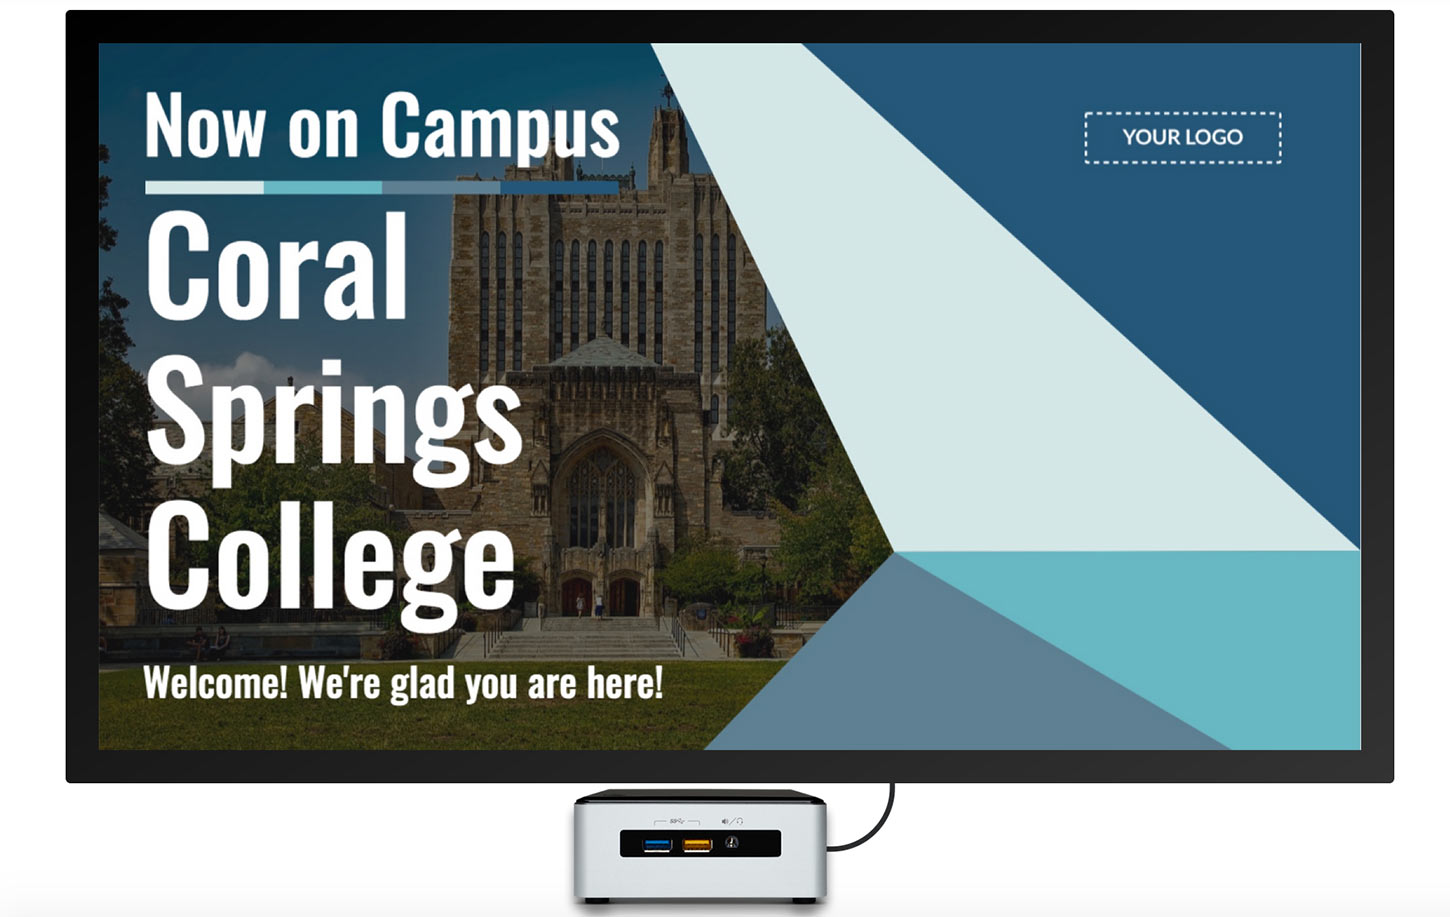 Universities Save Money with Digital Signage